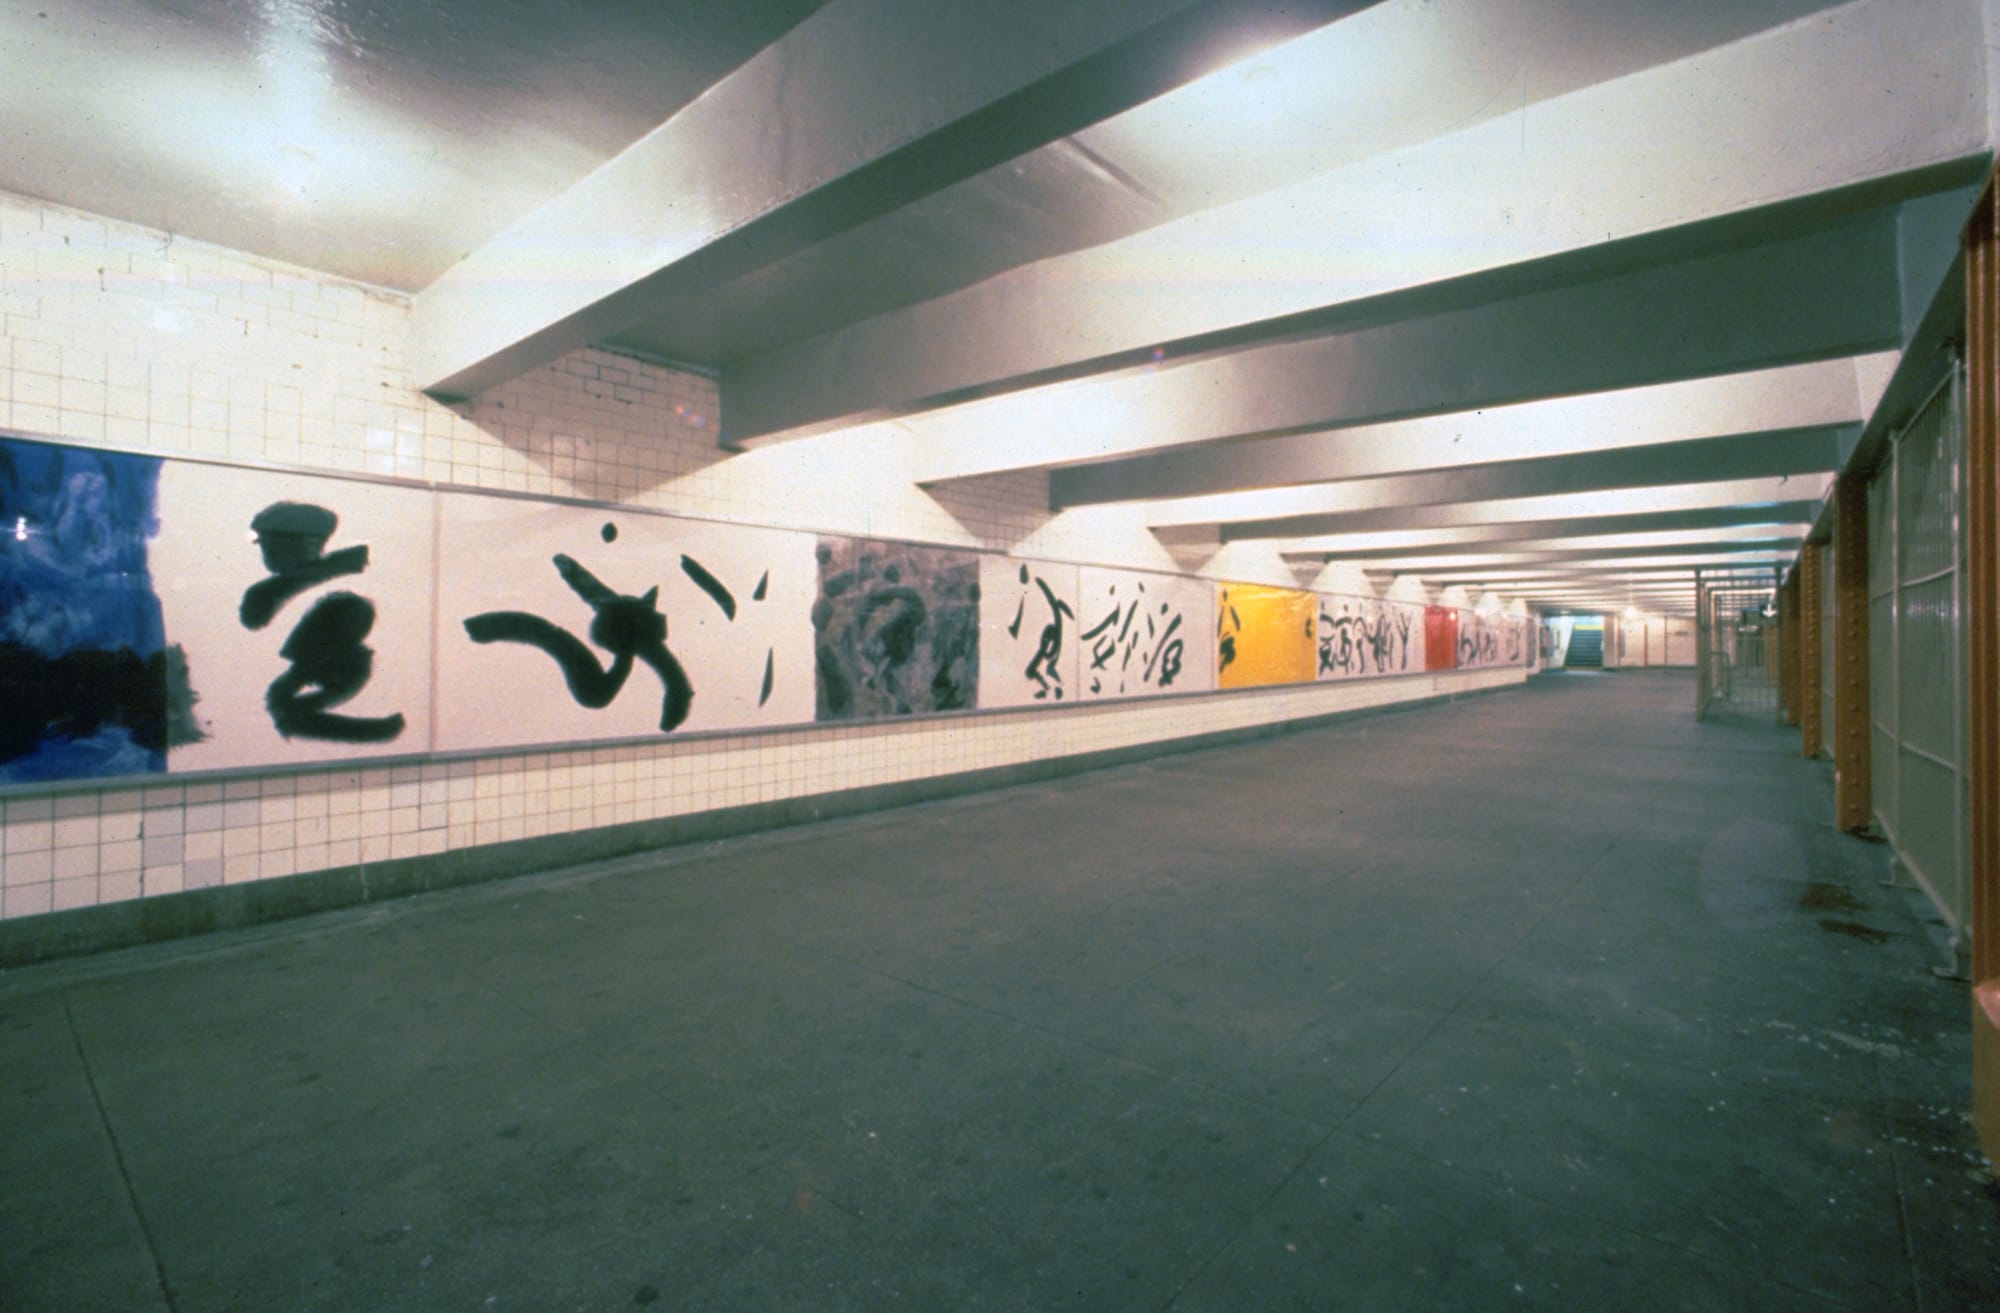 See Parallel Motion 96 Ft Long Subway Wall Mural Installed In